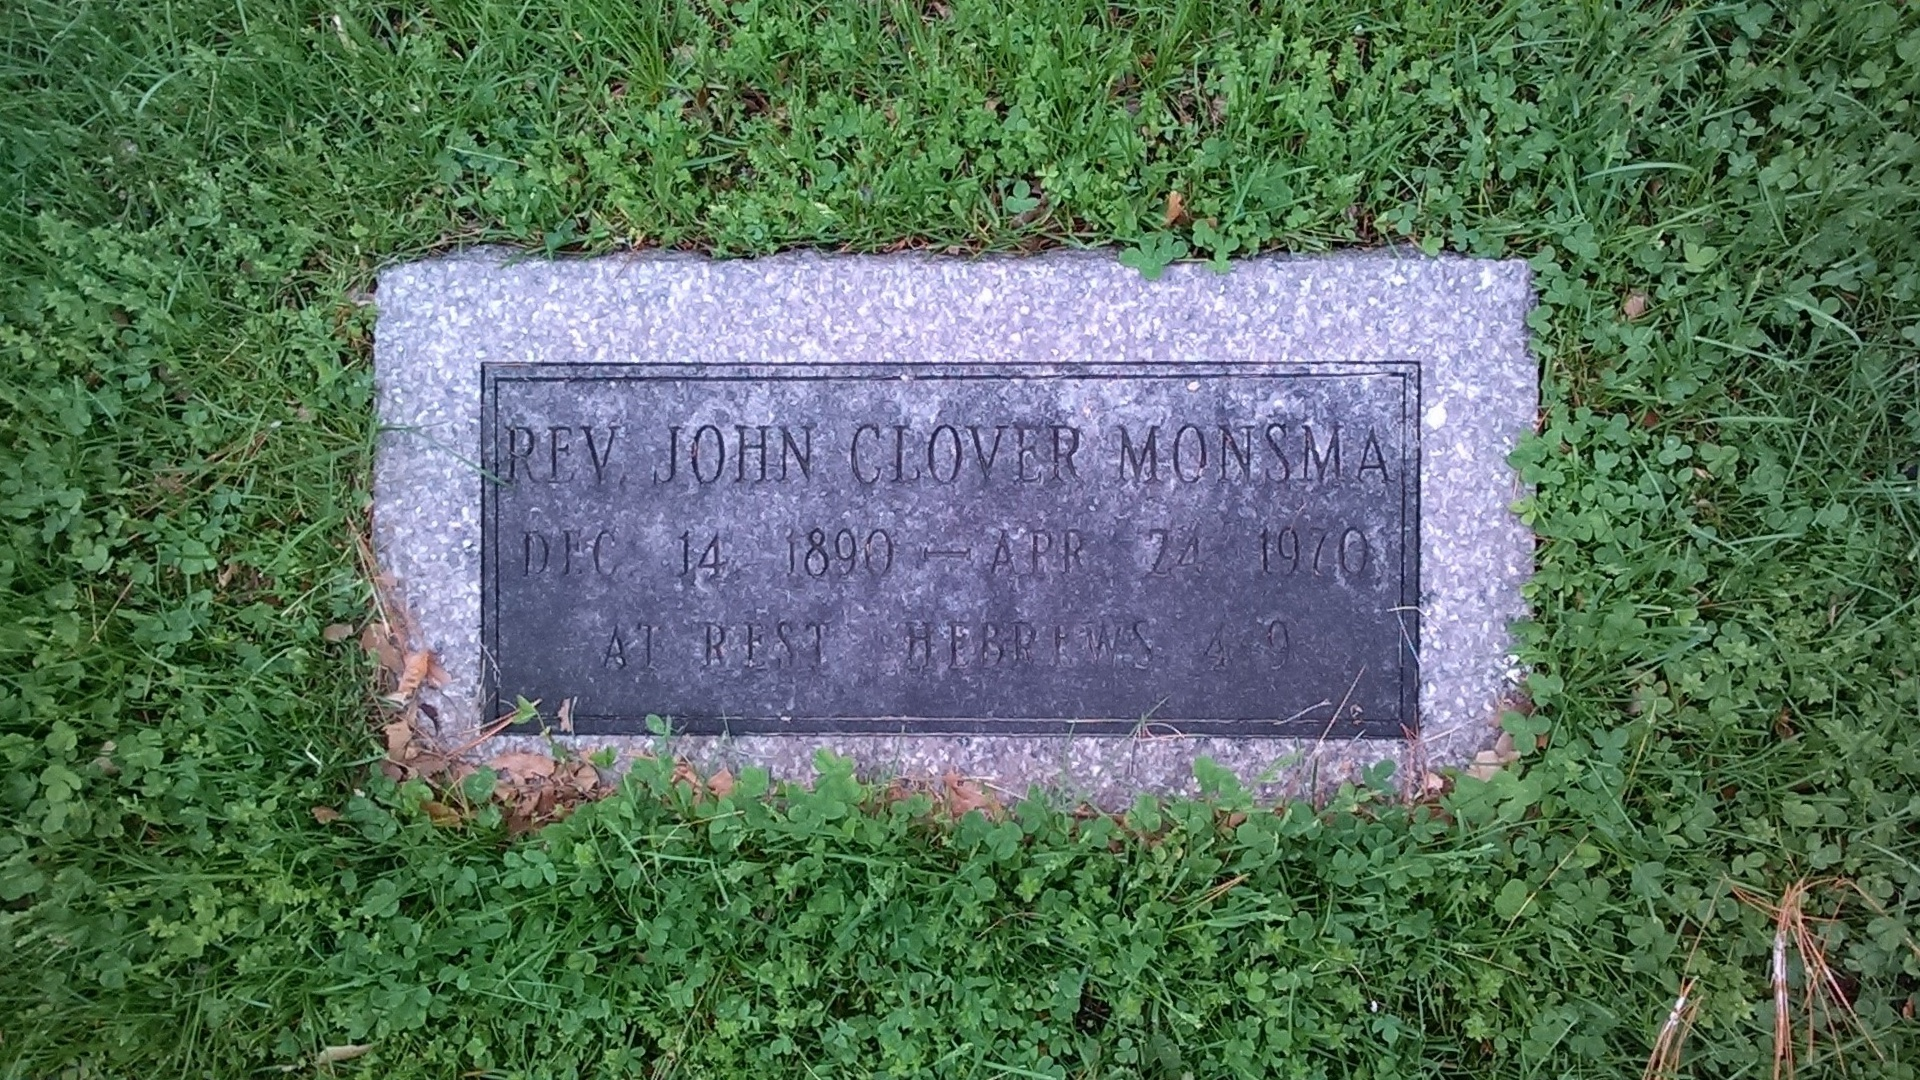 John Clover Monsma is buried at Woodlawn Cemetery, Grand Rapids, Michigan.